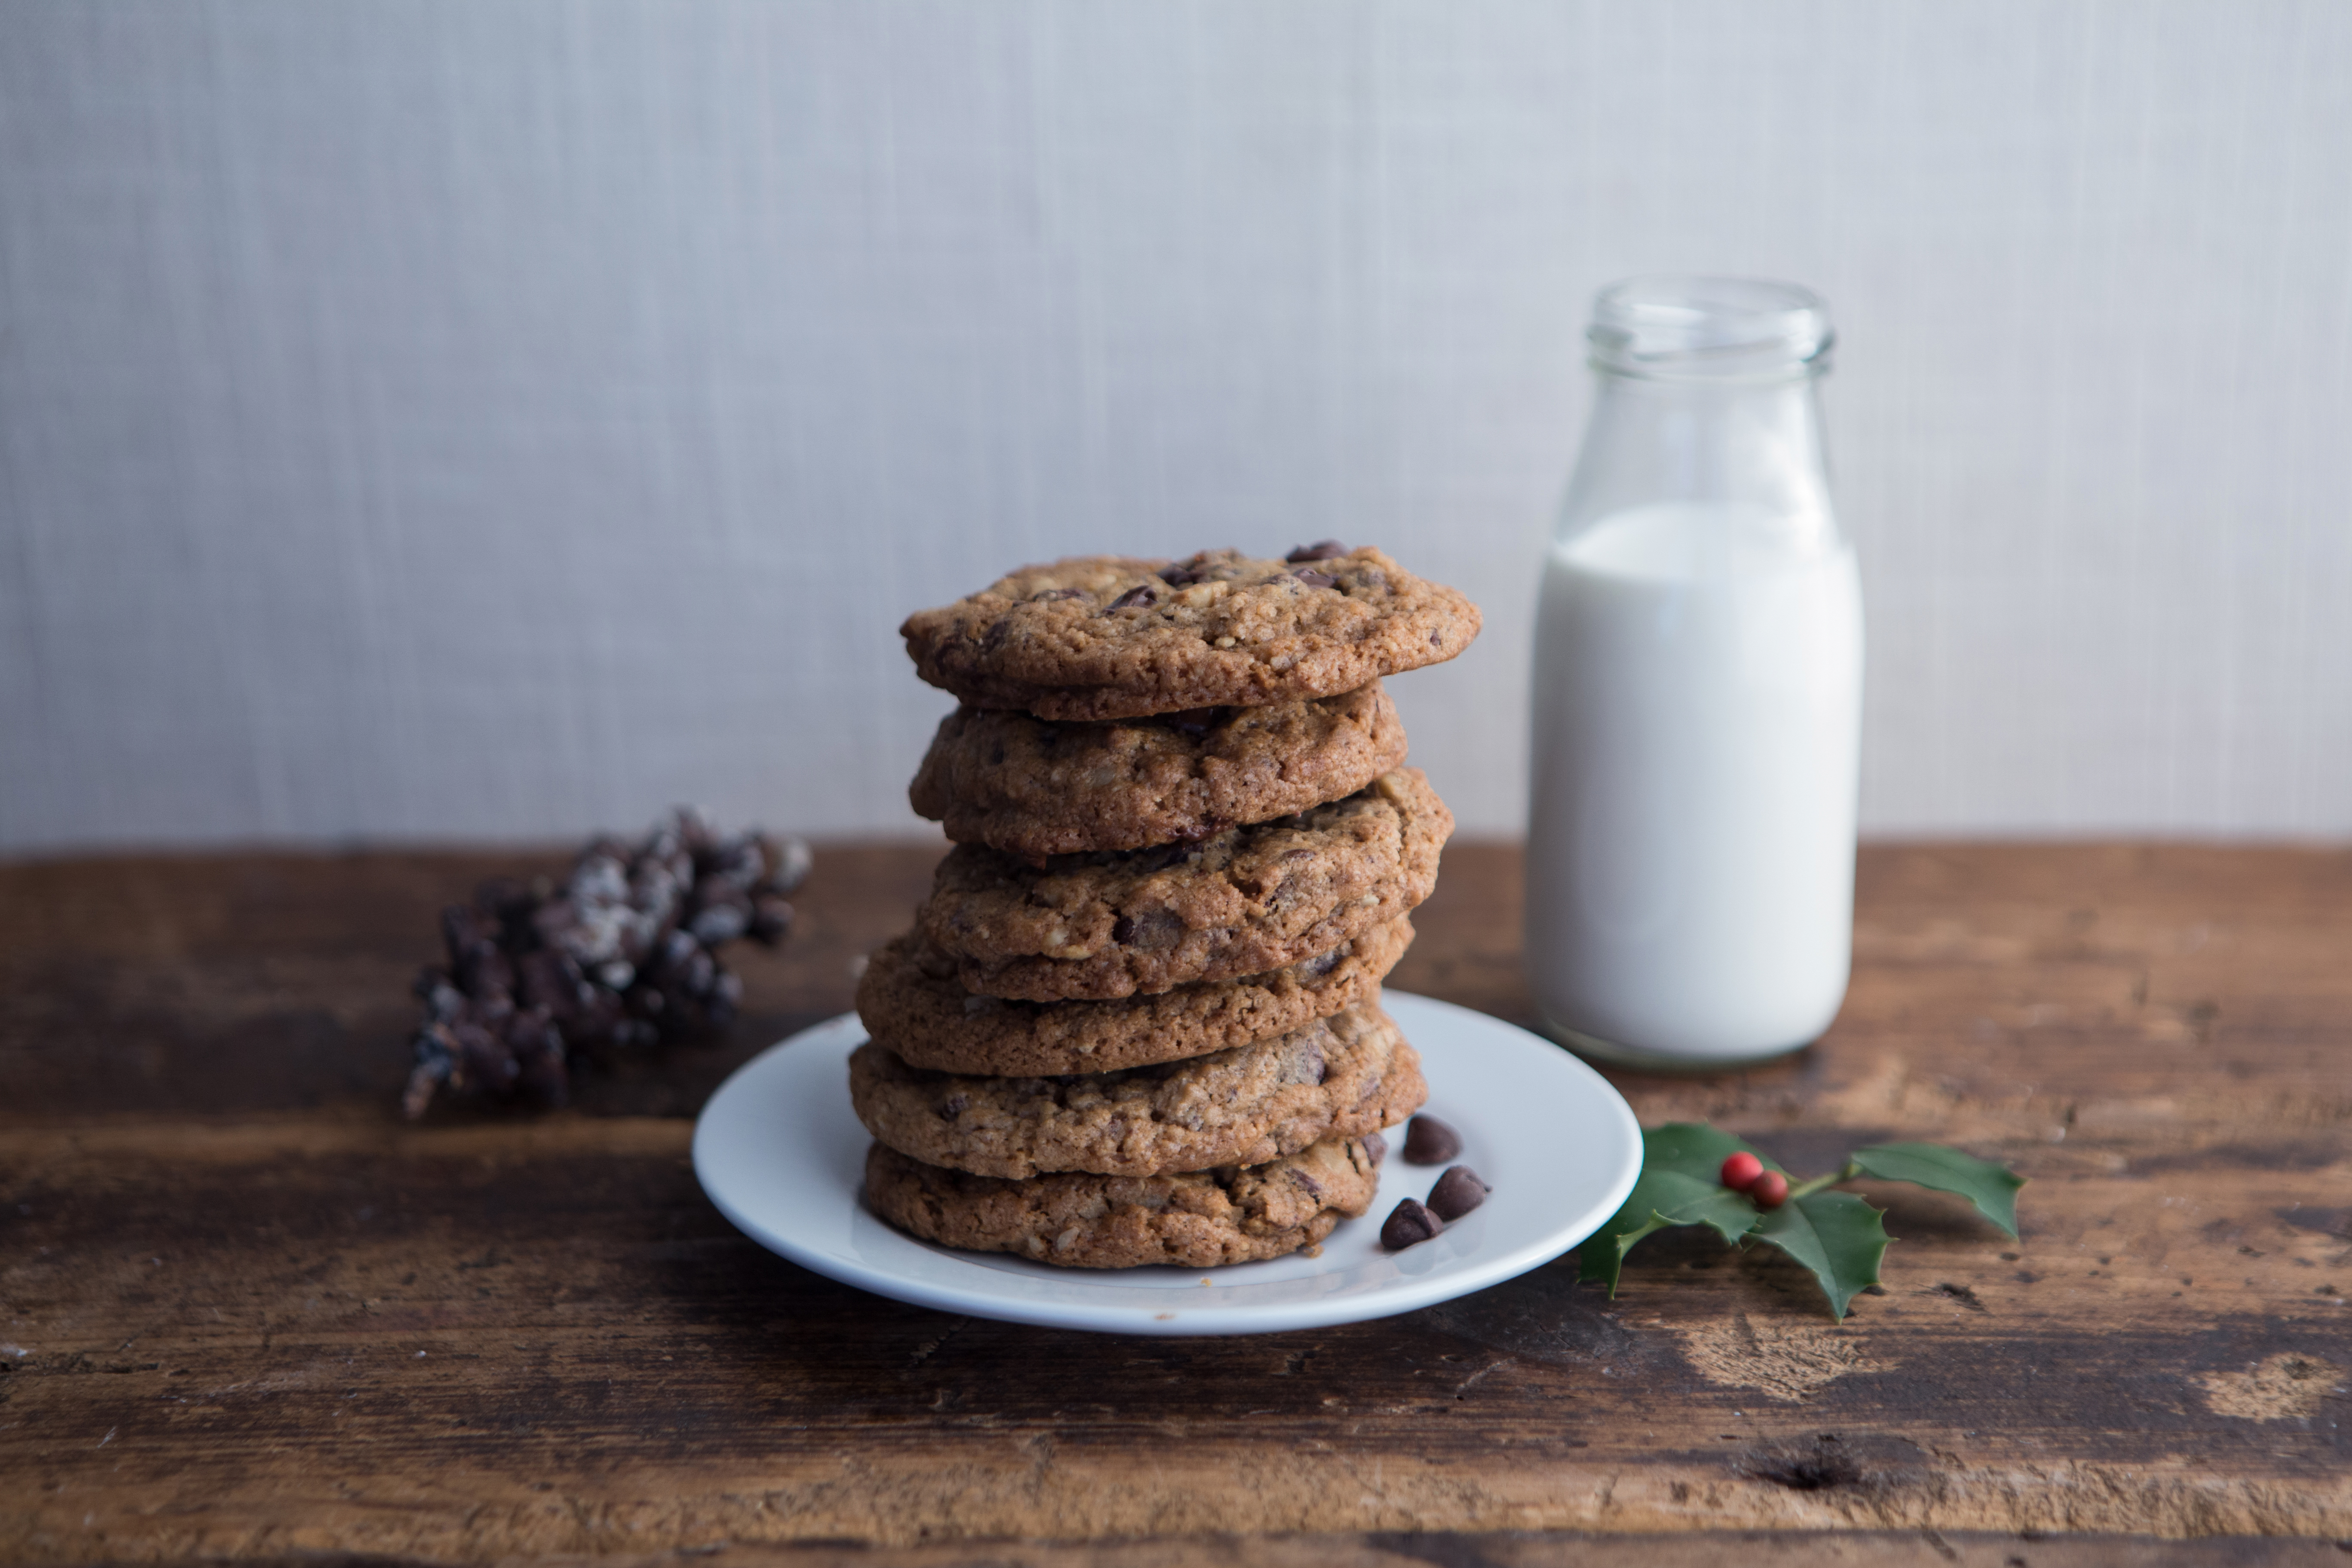 Doubletree By Hilton Celebrates National Cookie Day By Welcoming